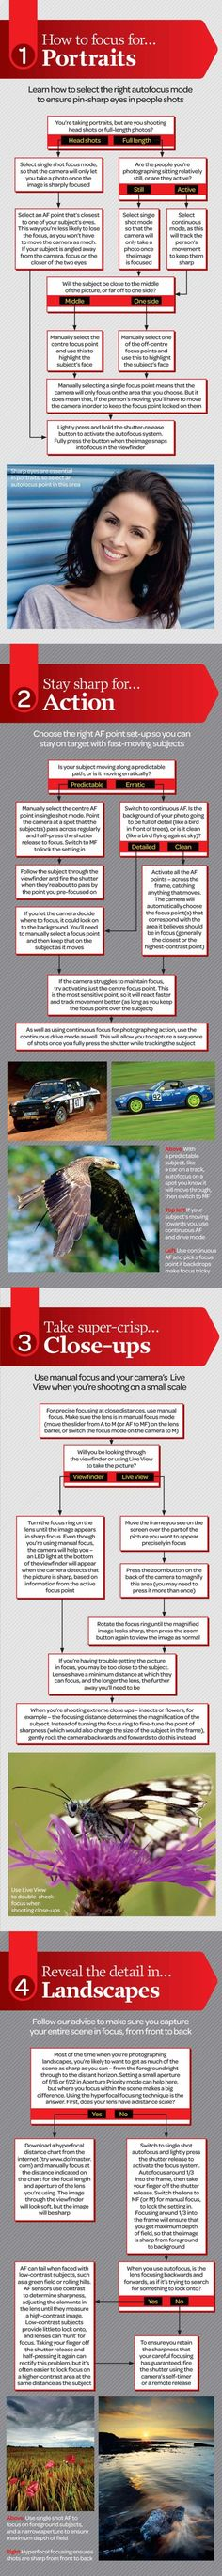 How to focus your camera for any subject or scene: free photography cheat sheet Digital Camera World Iphone Photography Apps, Photography Cheat Sheets, Photography Basics, Free Photography, Photography Lessons, Photography Camera, Photoshop Photography, Photography Business, Photography Tutorials